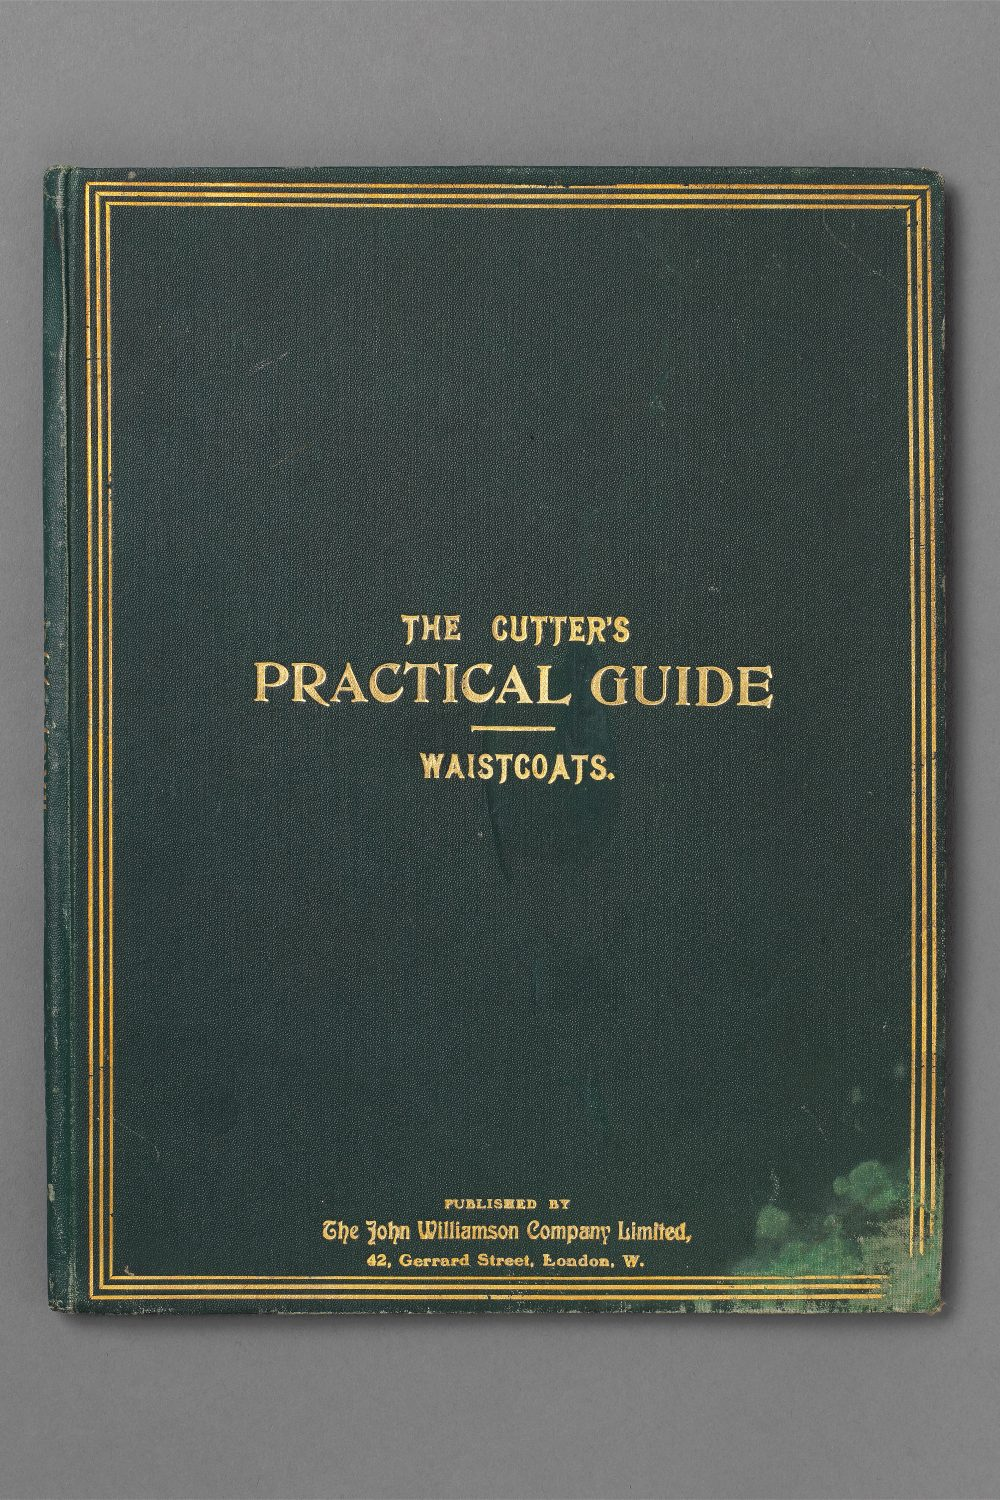 Practical Guide